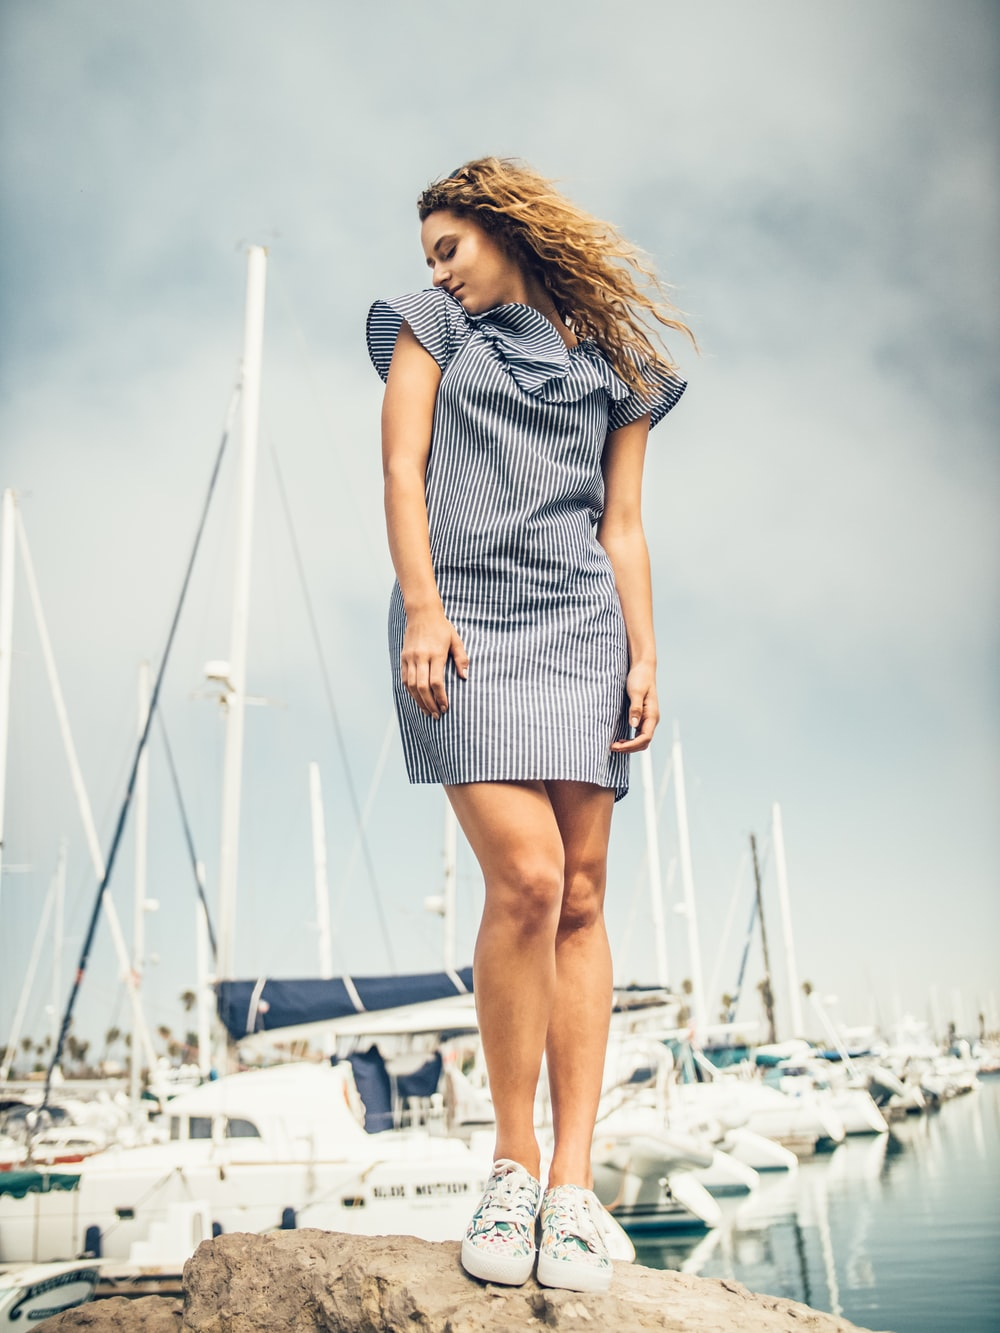 woman standing on rock near yachts during daytime